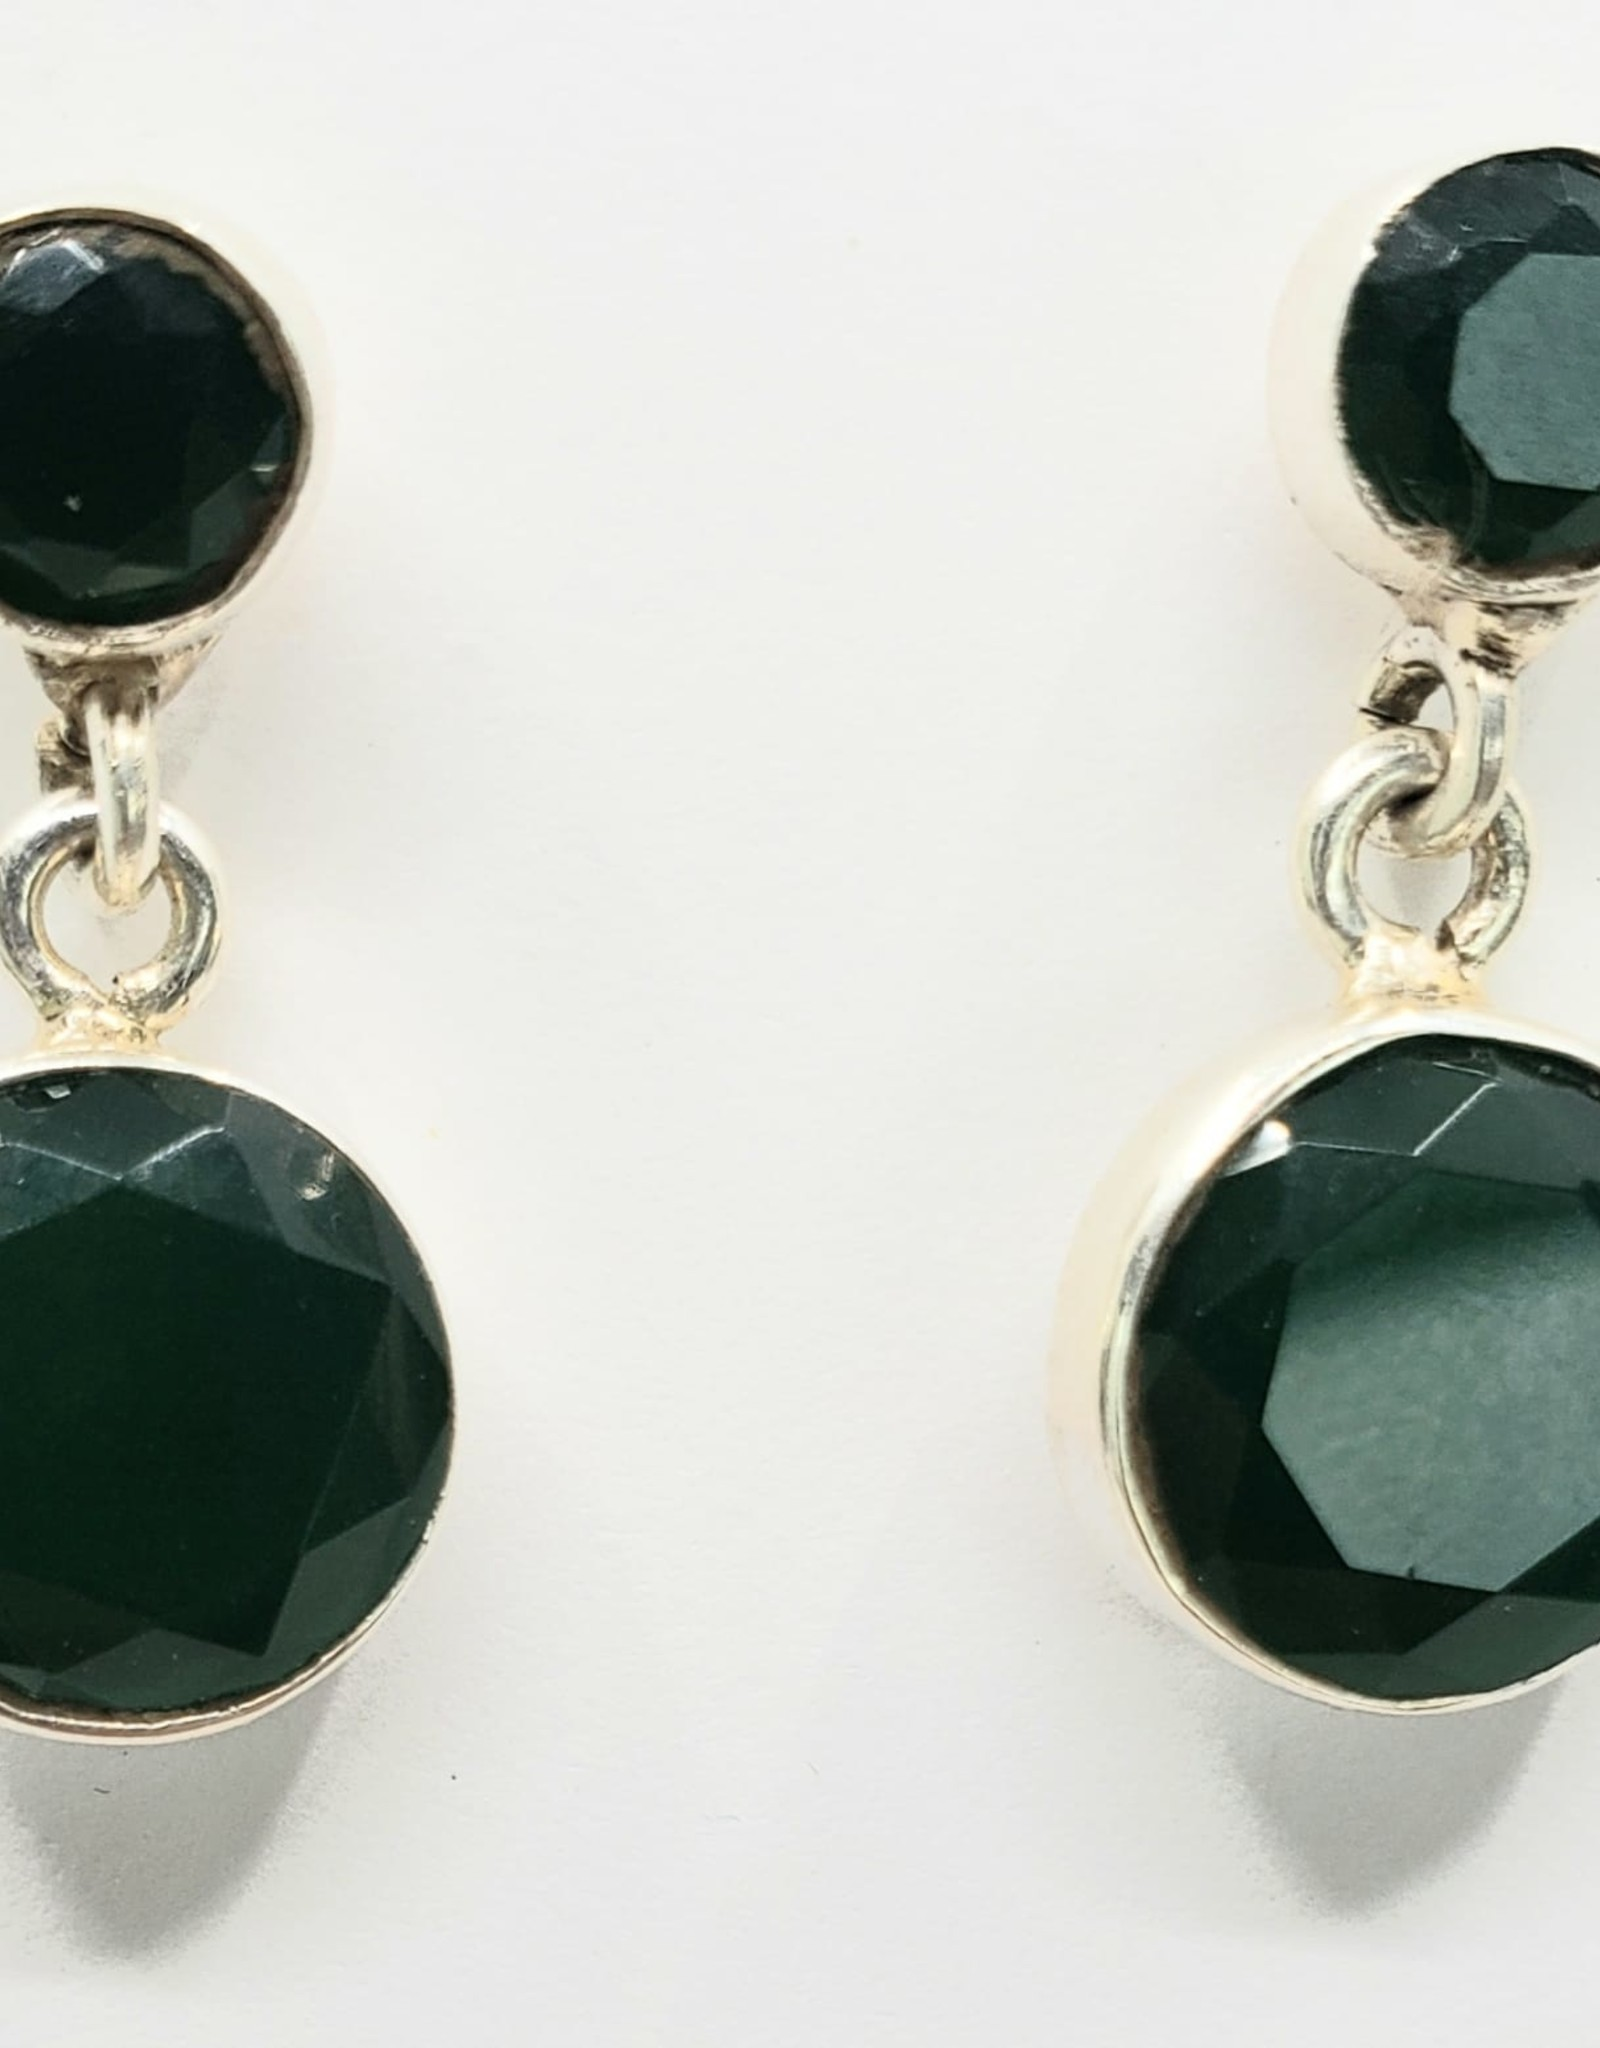 emerald earrings drop with stud posts